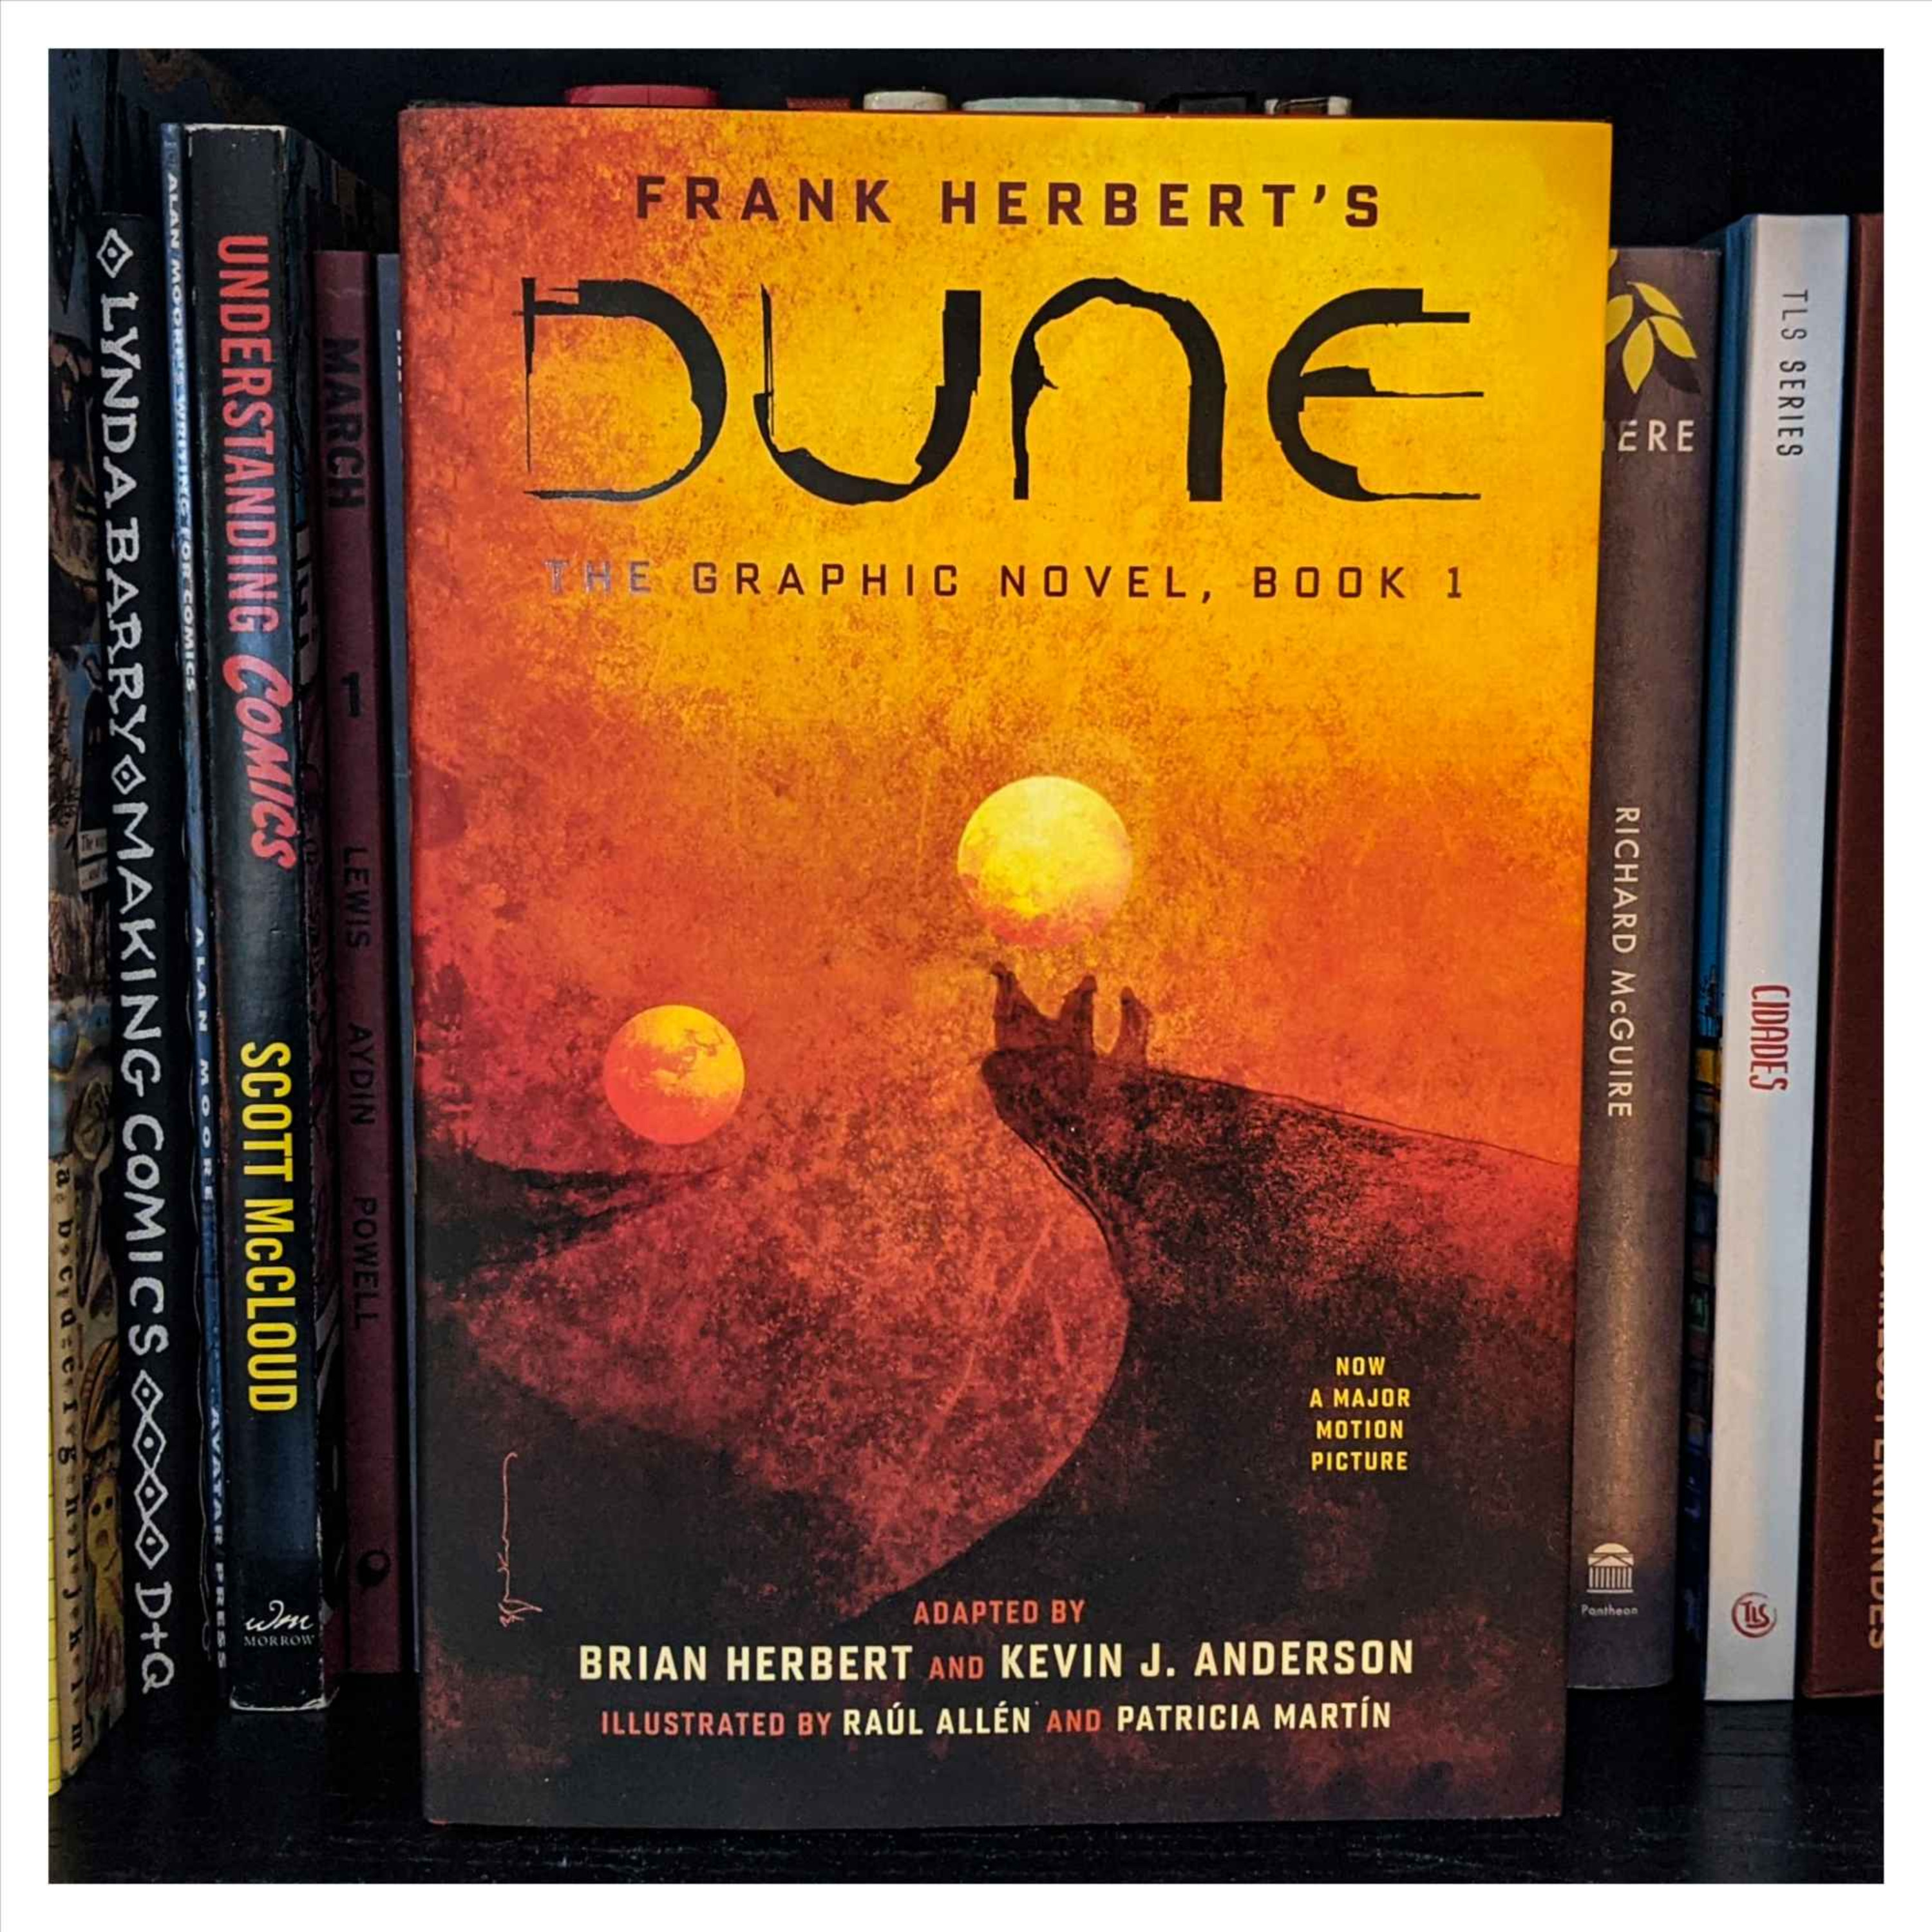 #160 – DUNE The Graphic Novel, Book 1